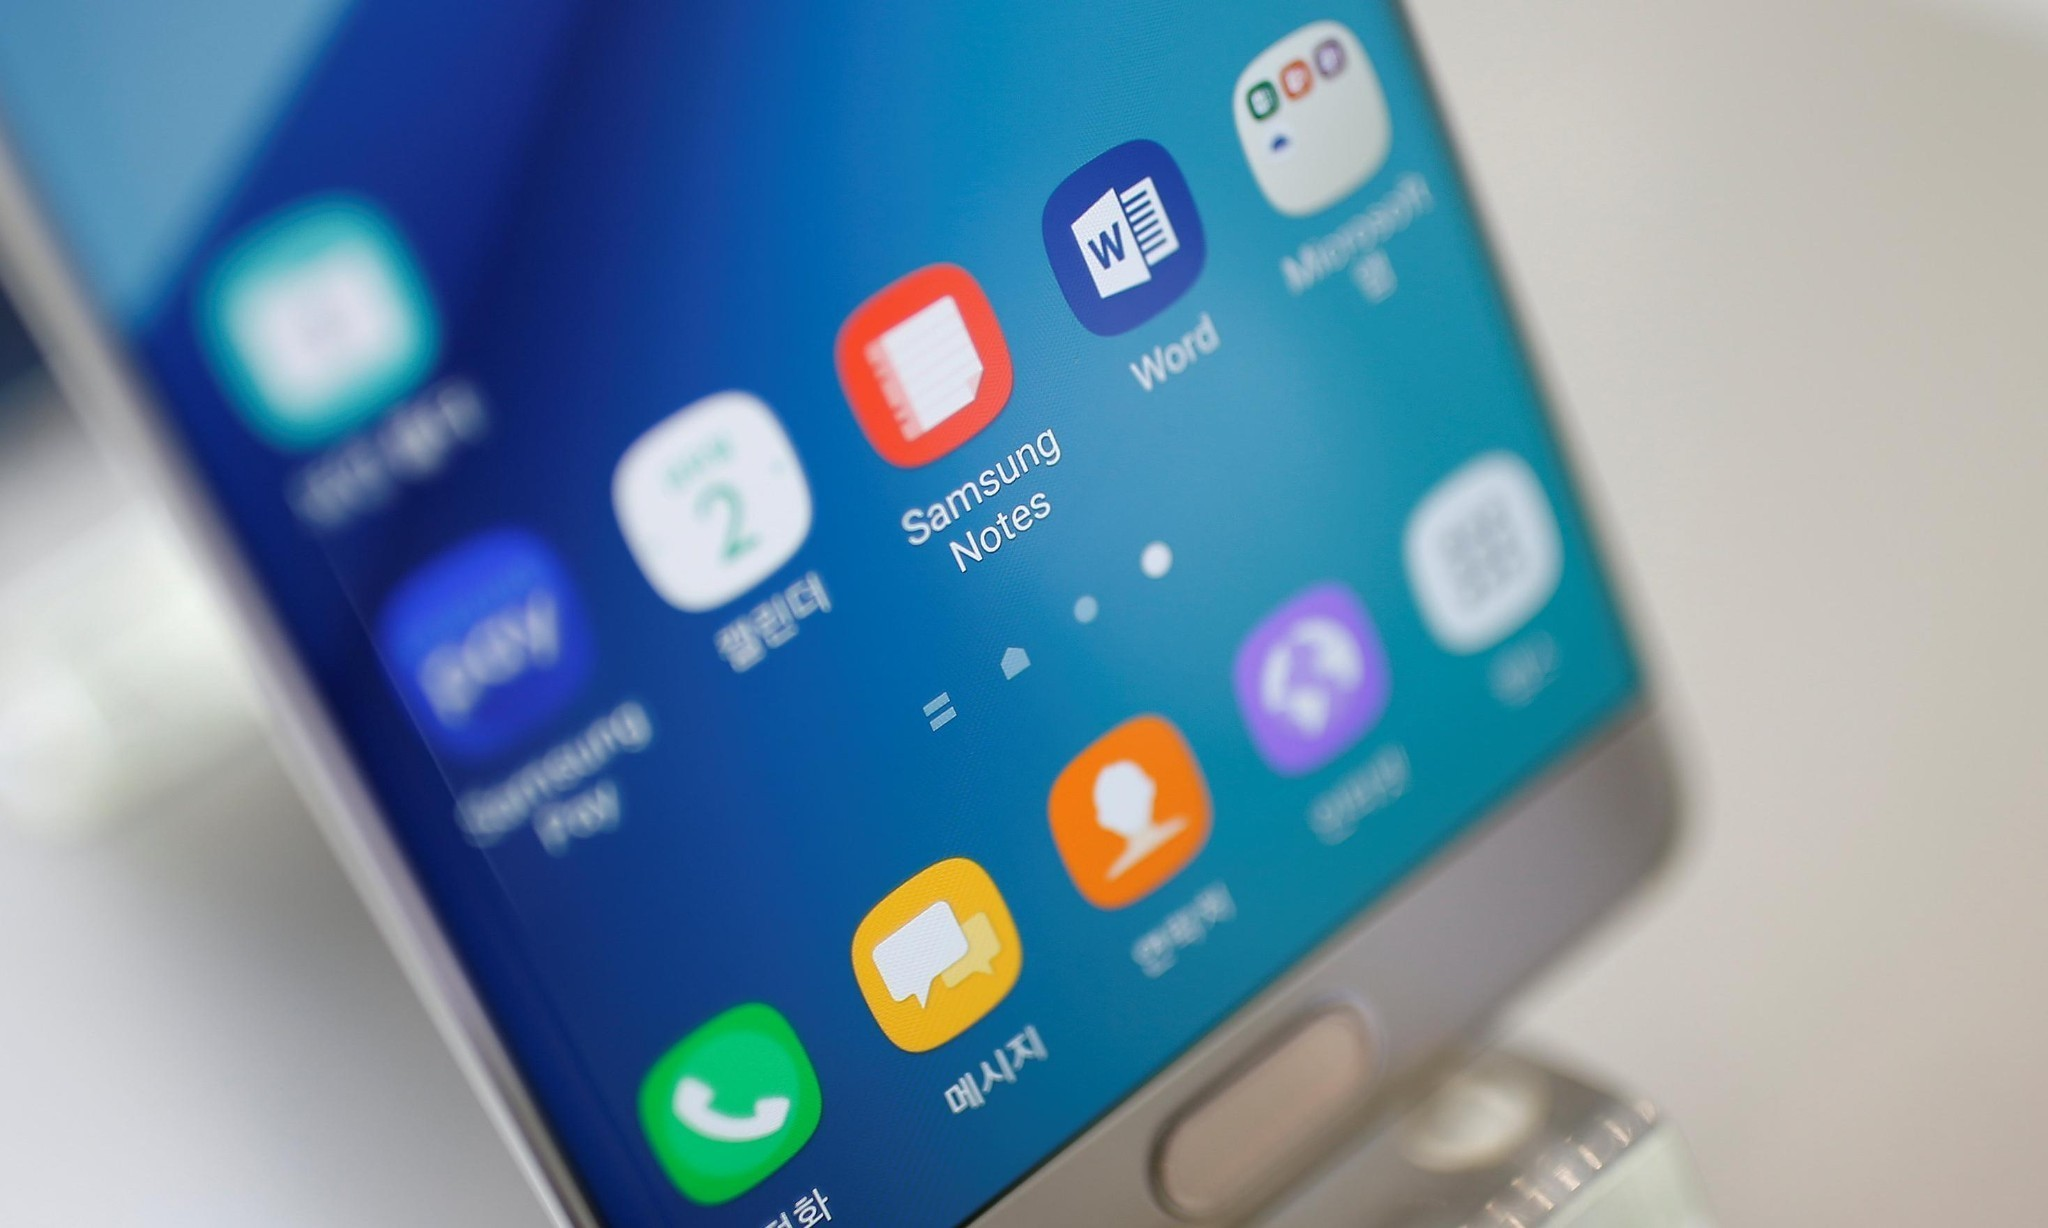 Samsung to recall Galaxy Note 7 after reports of smartphones catching fire